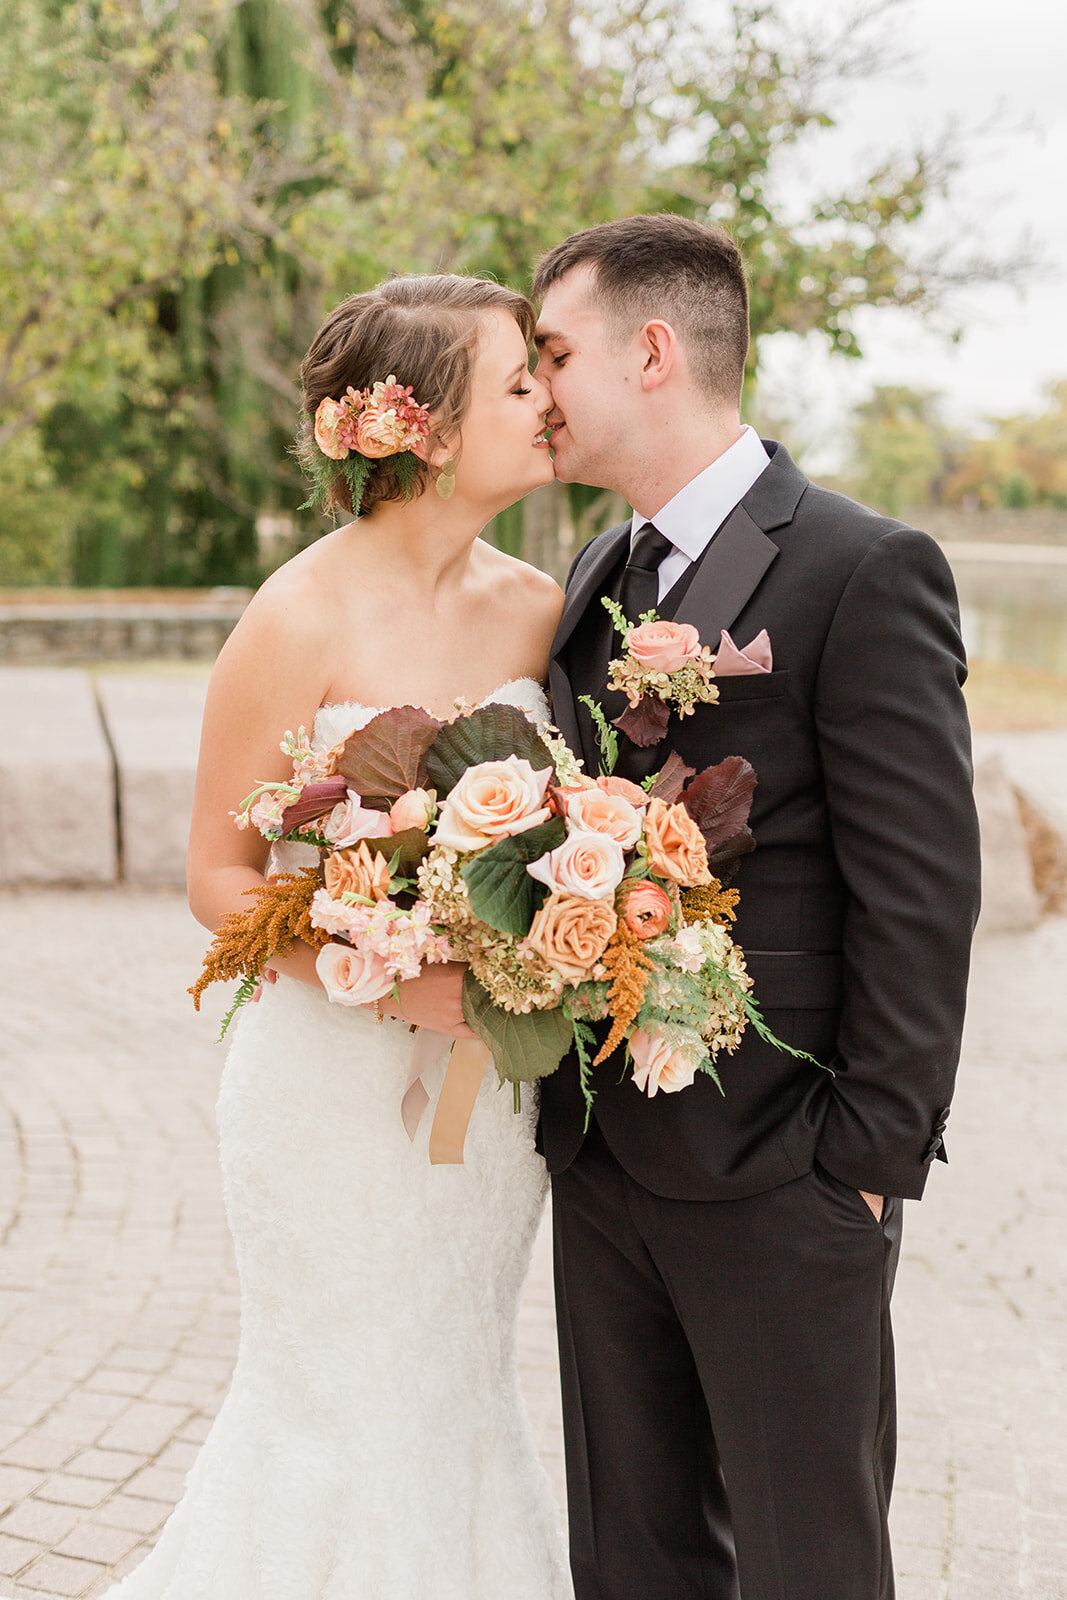 Shanna+Connor_DC_Oct2019_KelseyMariePhotography_SS-9015_websize